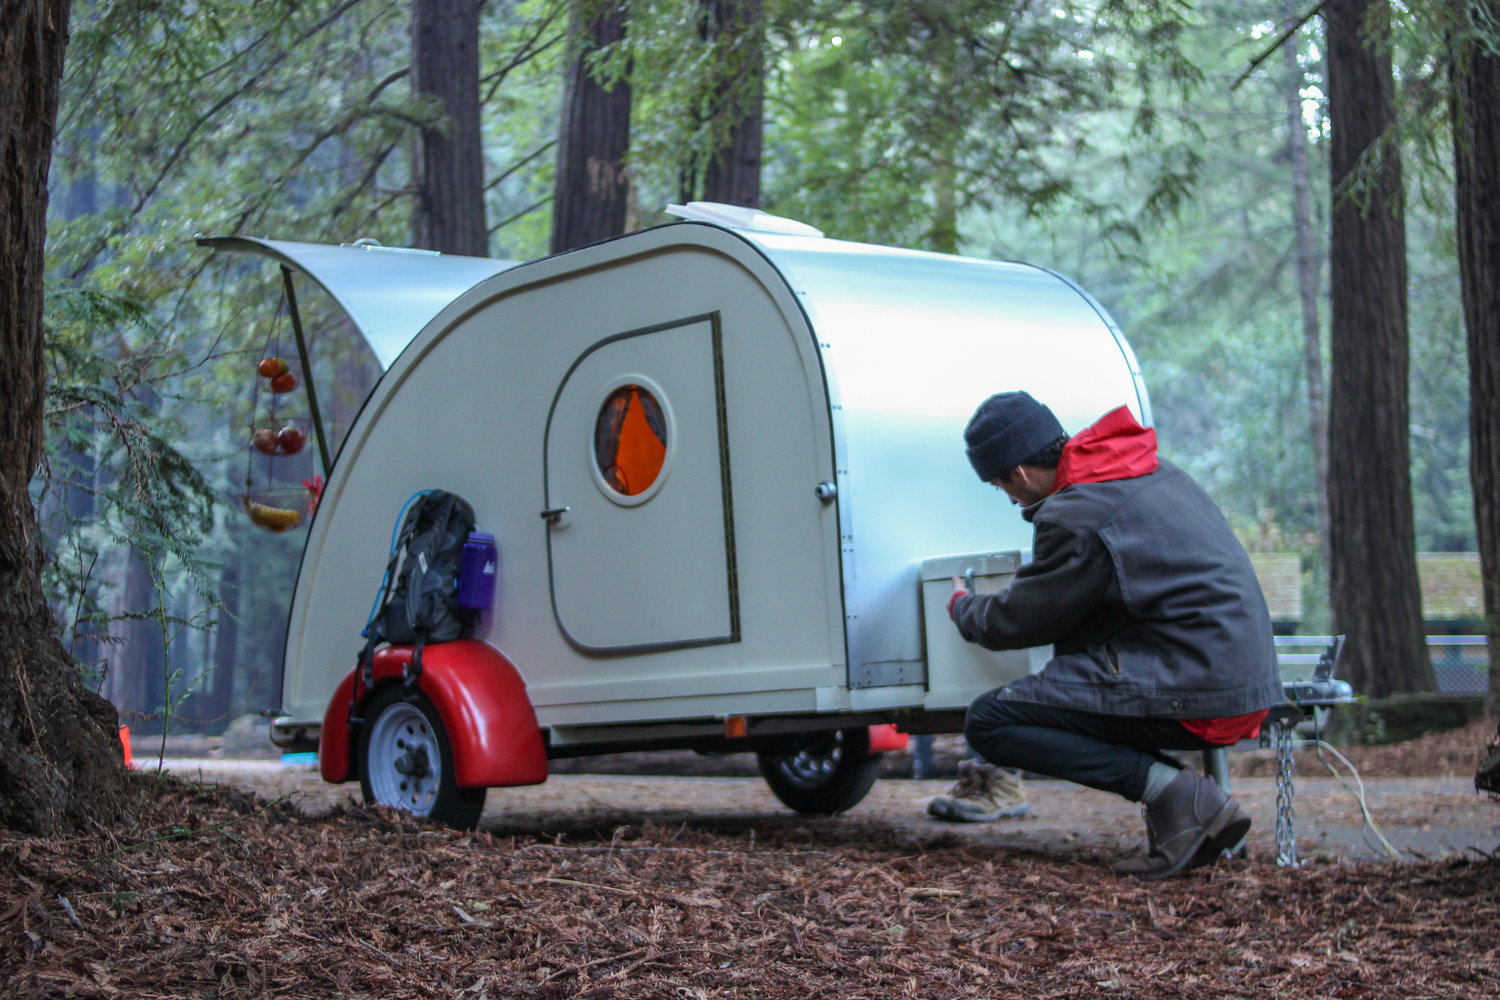 Get On An Adventure With This Vintage Teardrop Trailer! 4